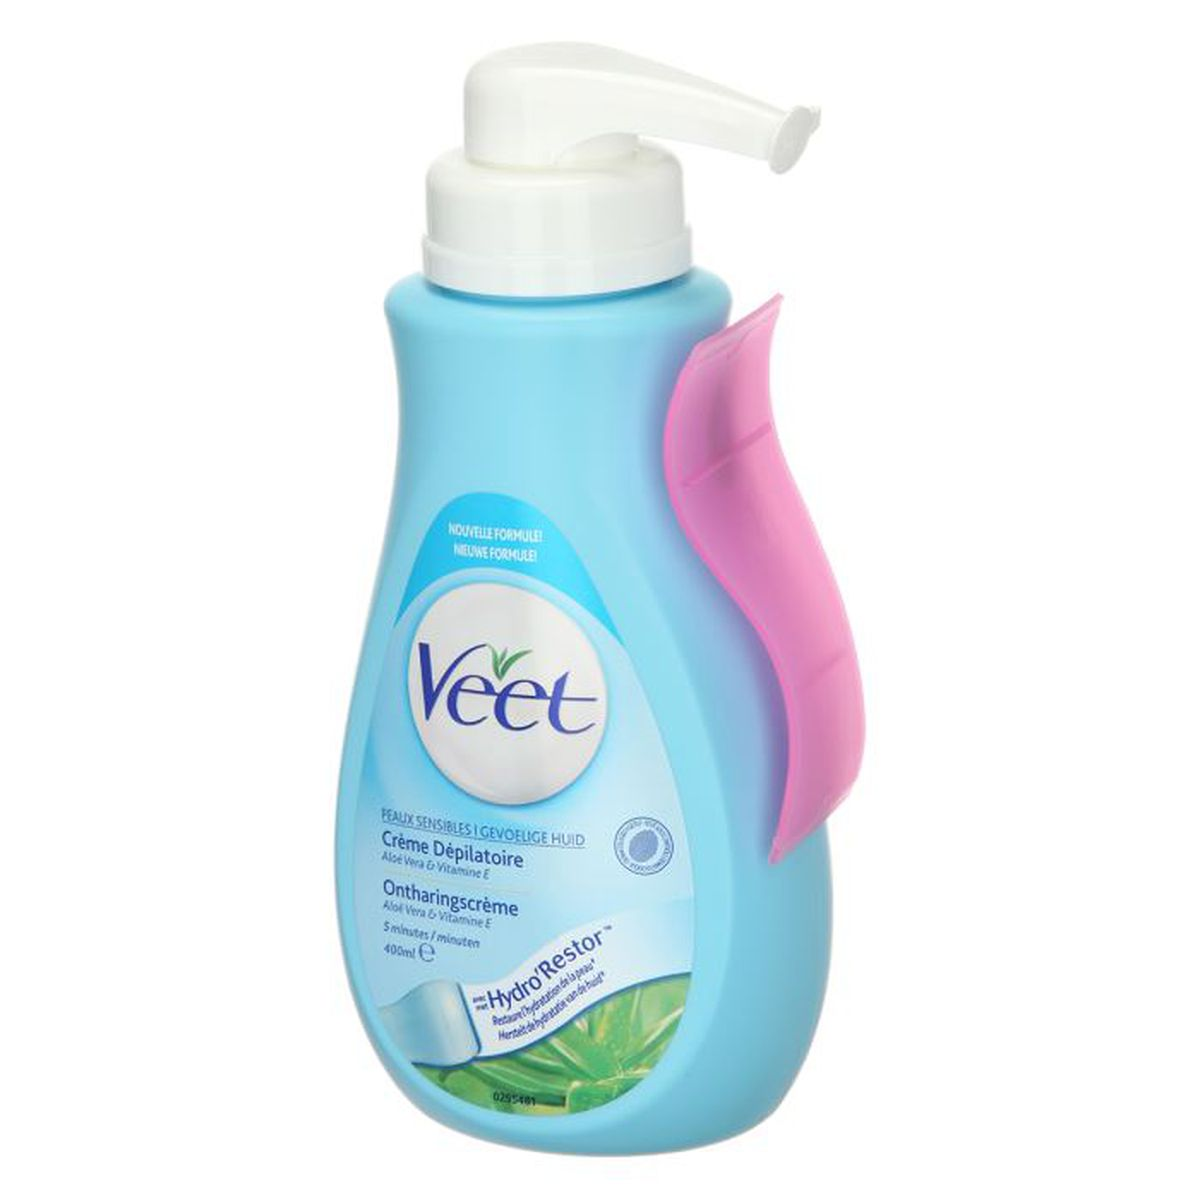 veet cr me d pilatoire pompe 400ml achat vente cr me d pilatoire veet creme pomp 400ml sensi. Black Bedroom Furniture Sets. Home Design Ideas